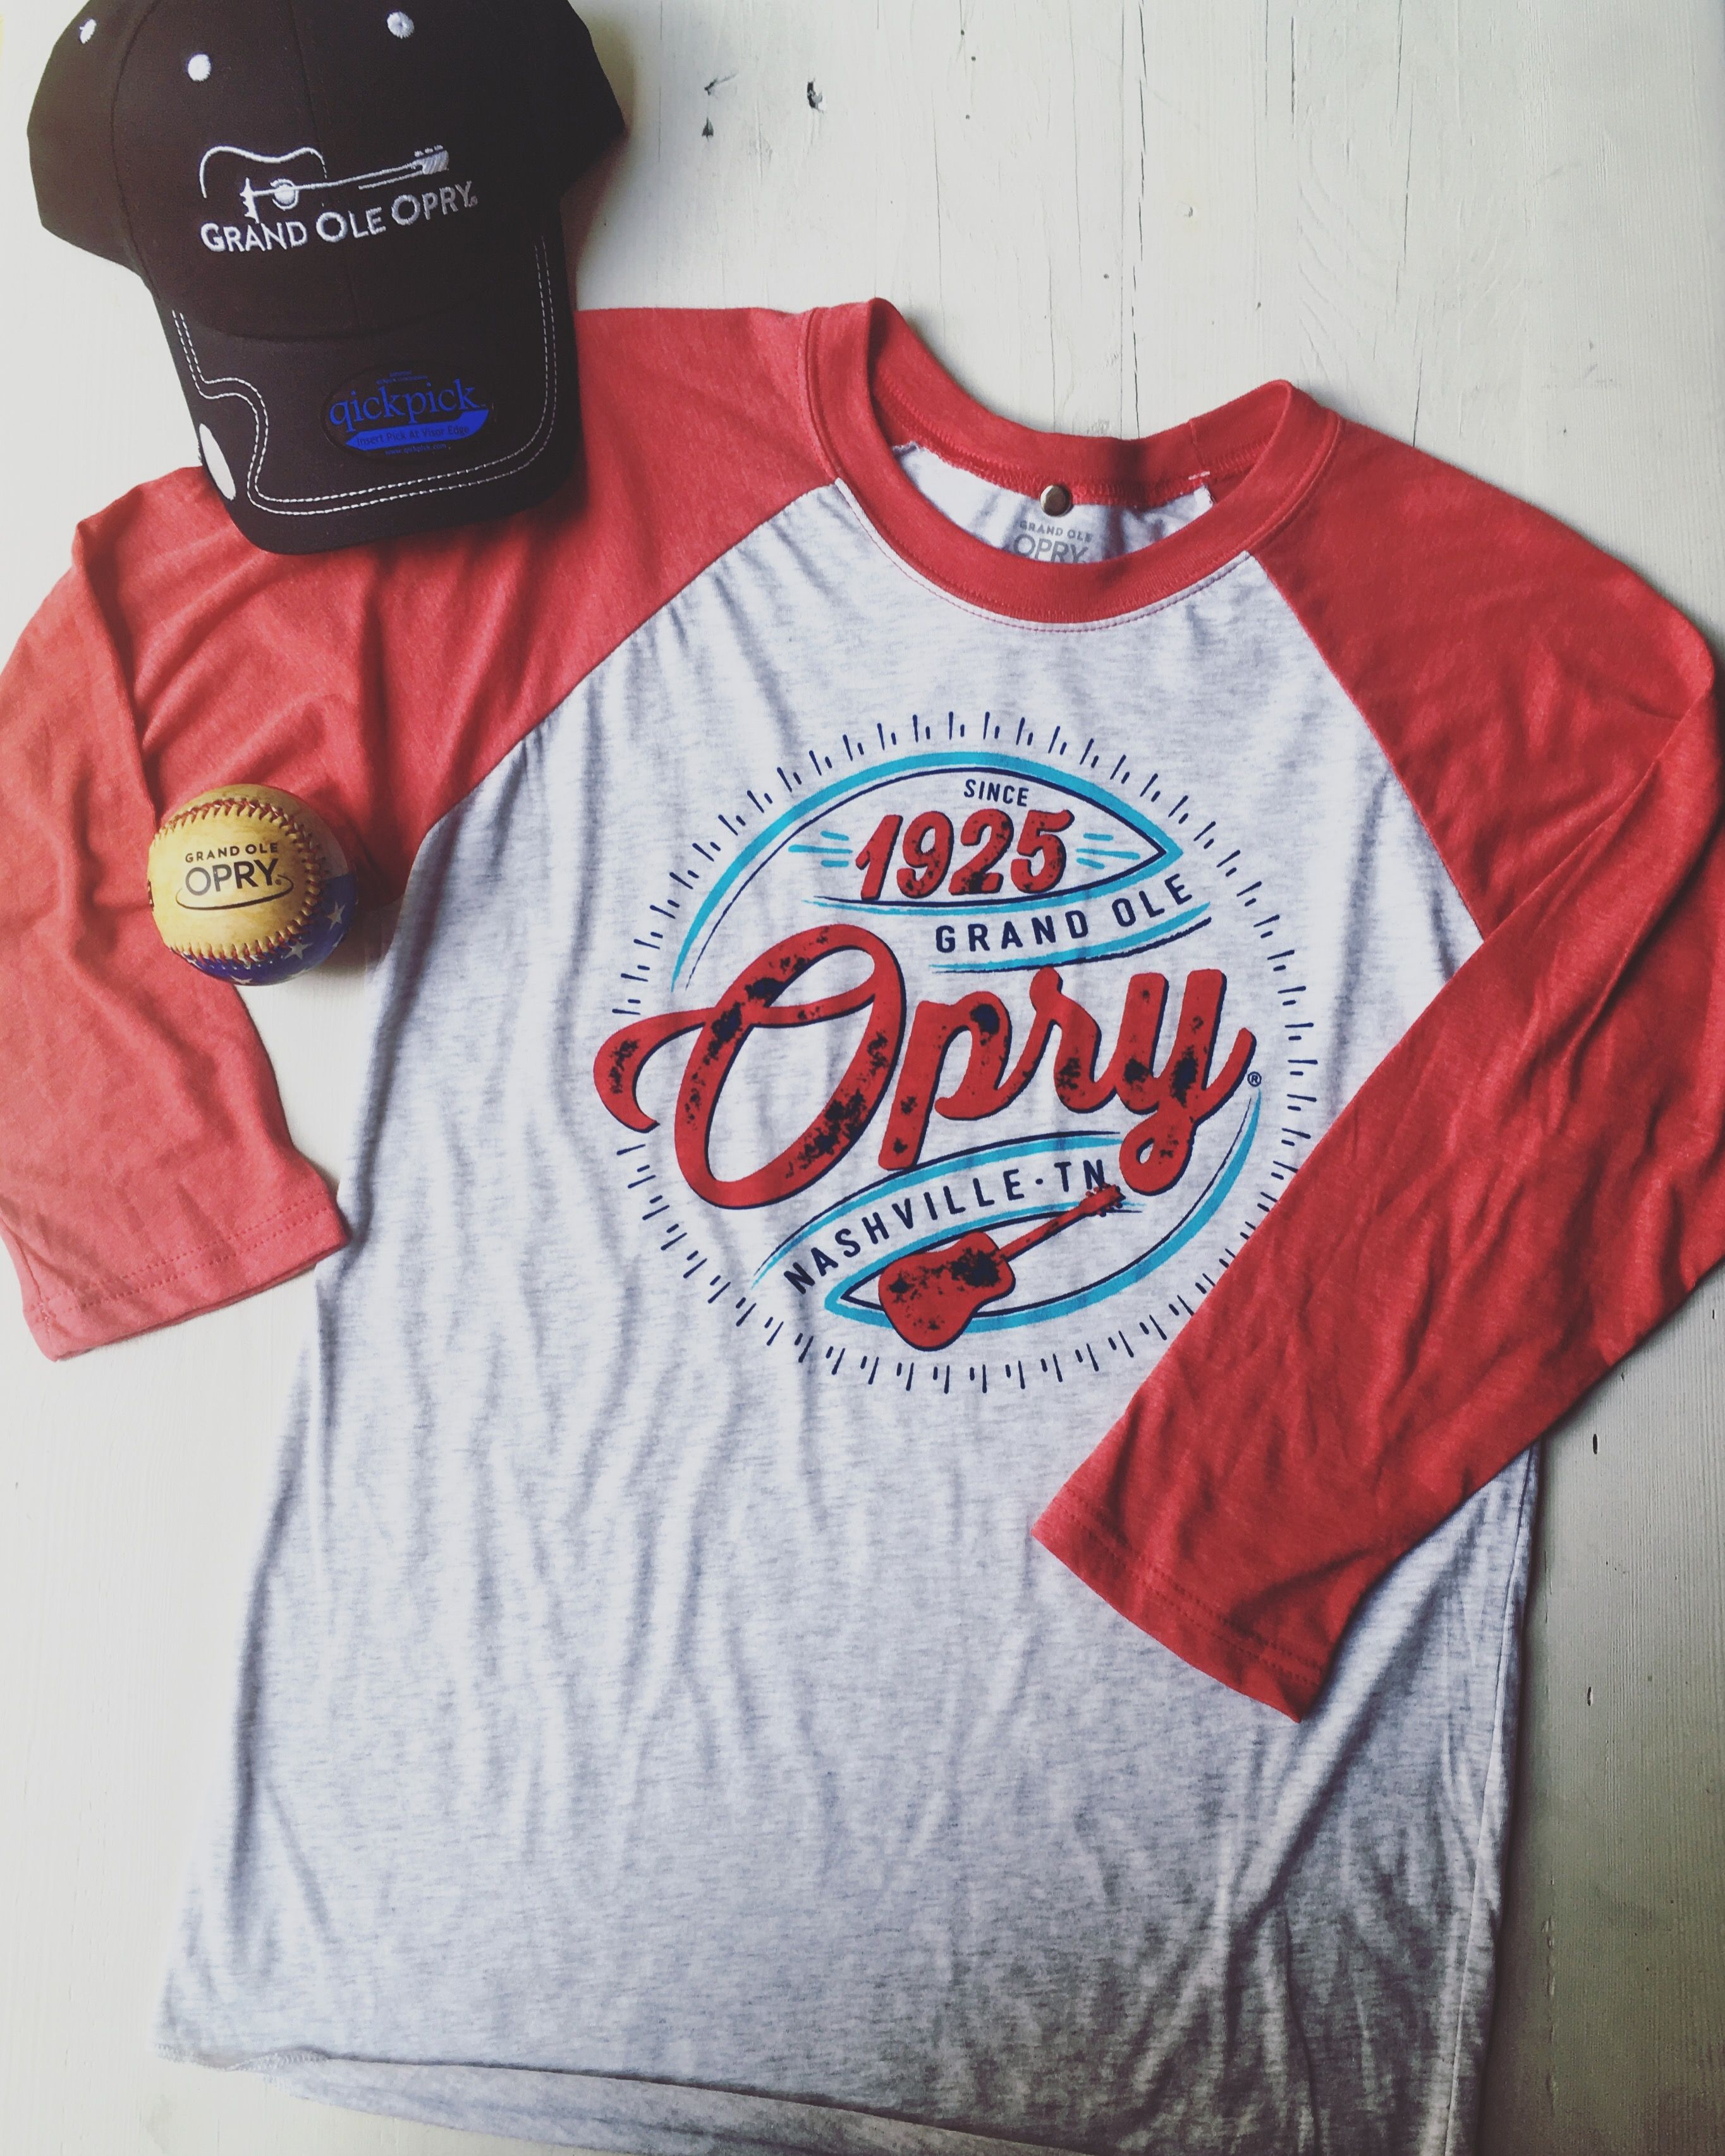 Root for the home team with this baseball tee and hat.